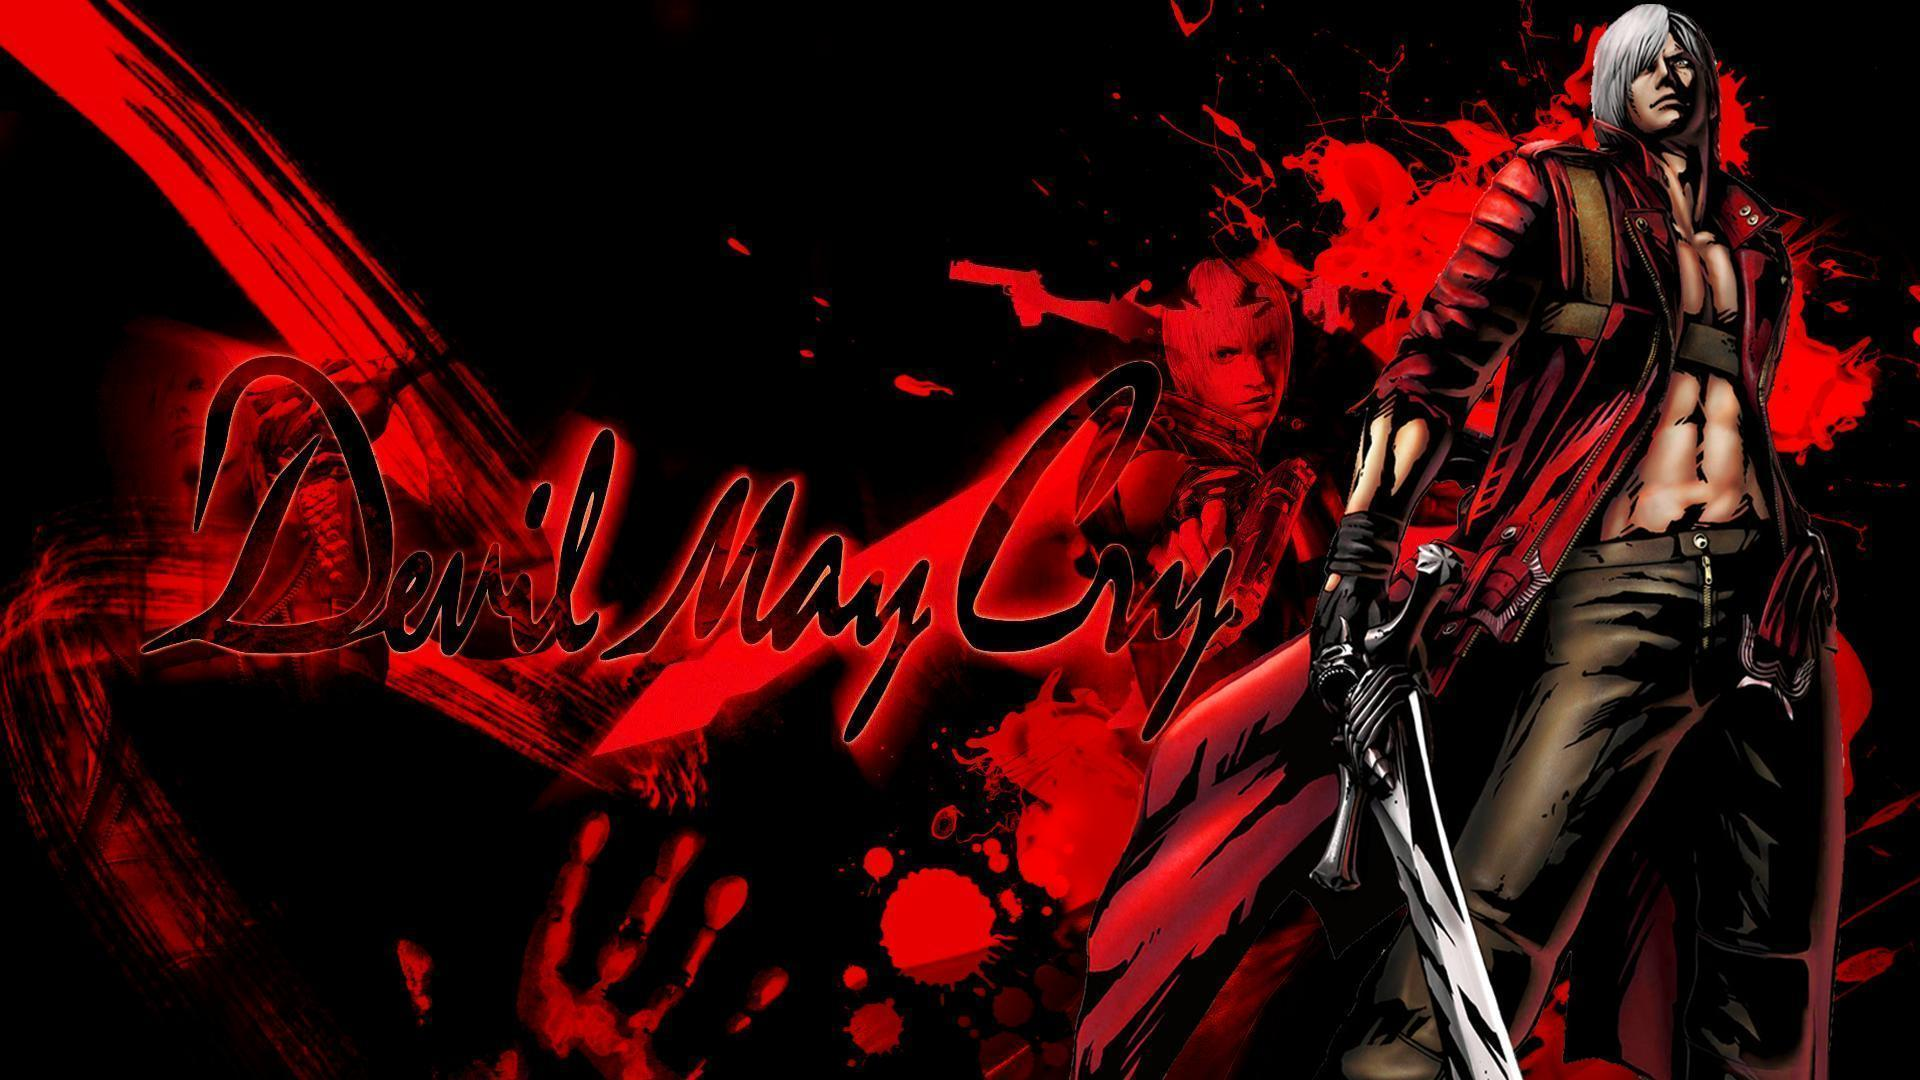 wallpapers devil may cry - photo #14